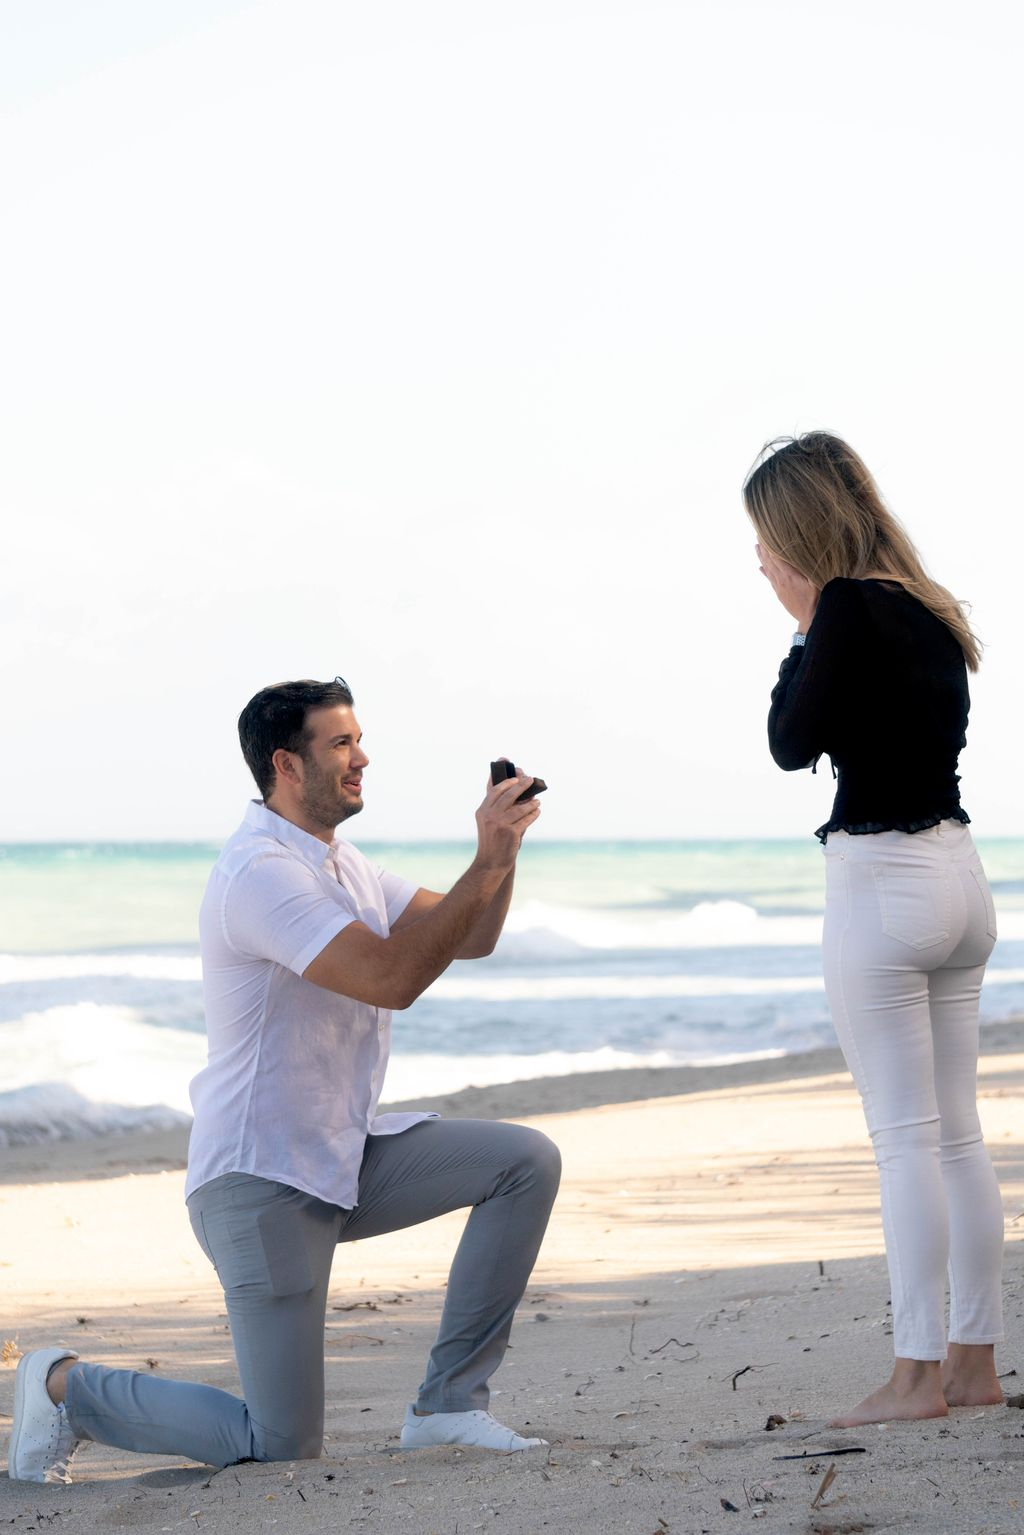 Engagement Photography - West Palm Beach 2021